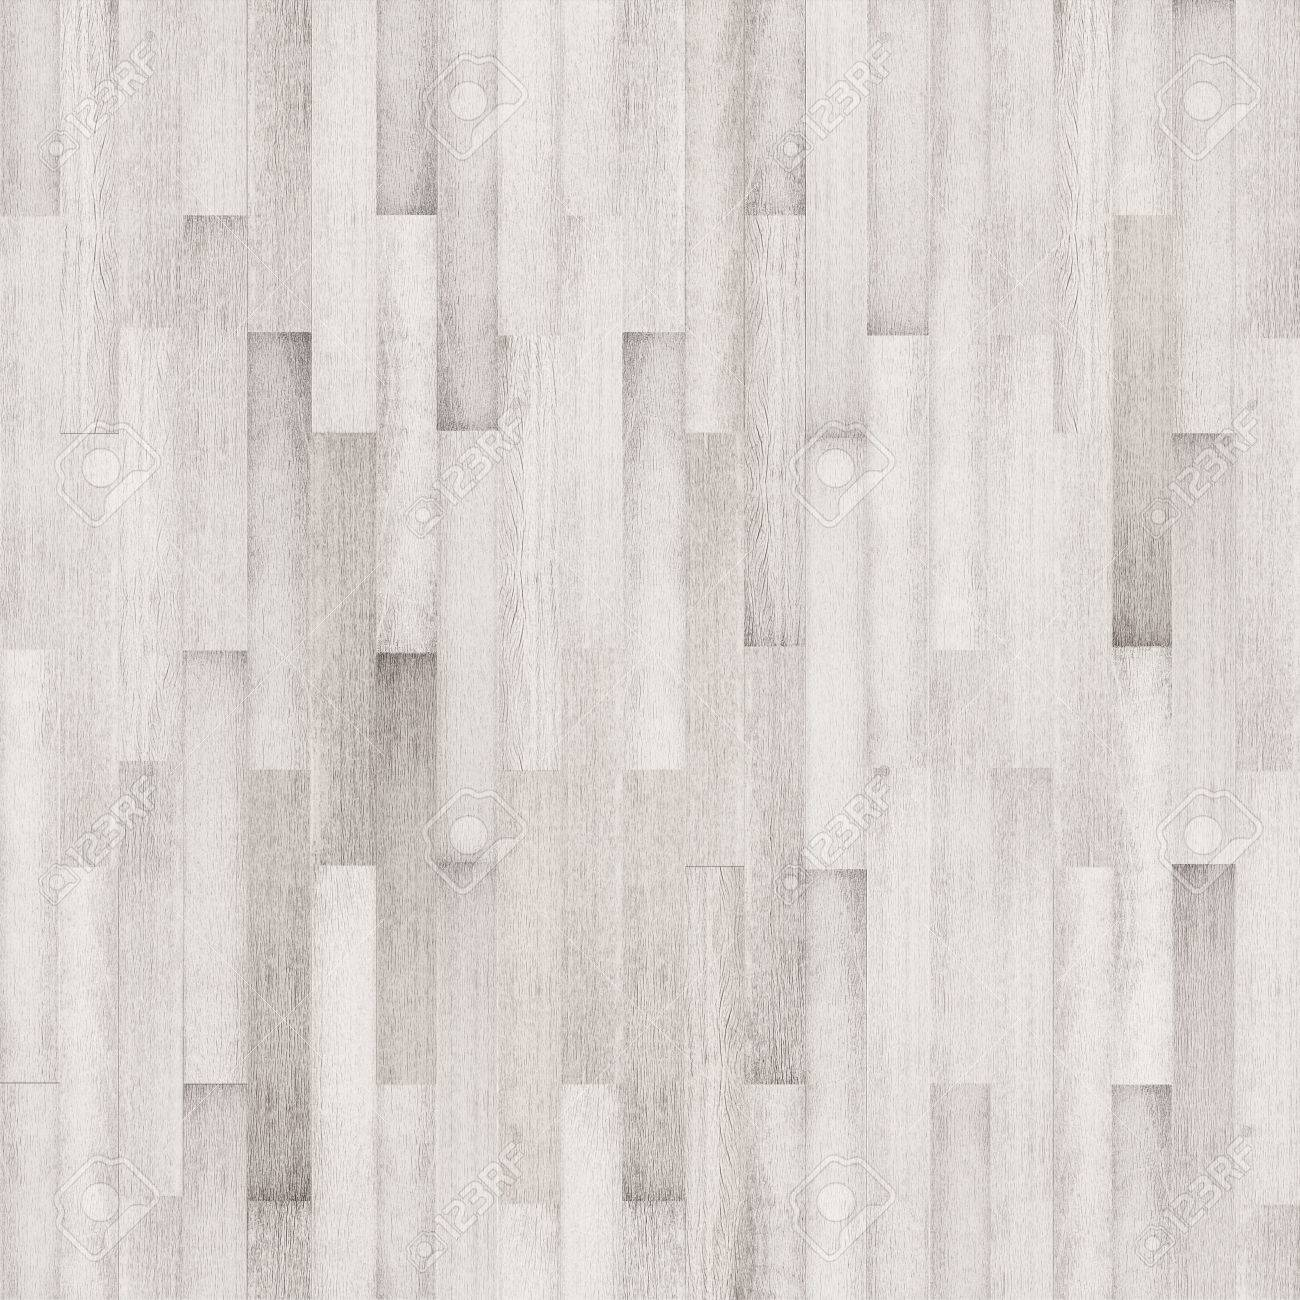 White Wood Texture Seamless Wood Floor Texture Stock Photo Picture